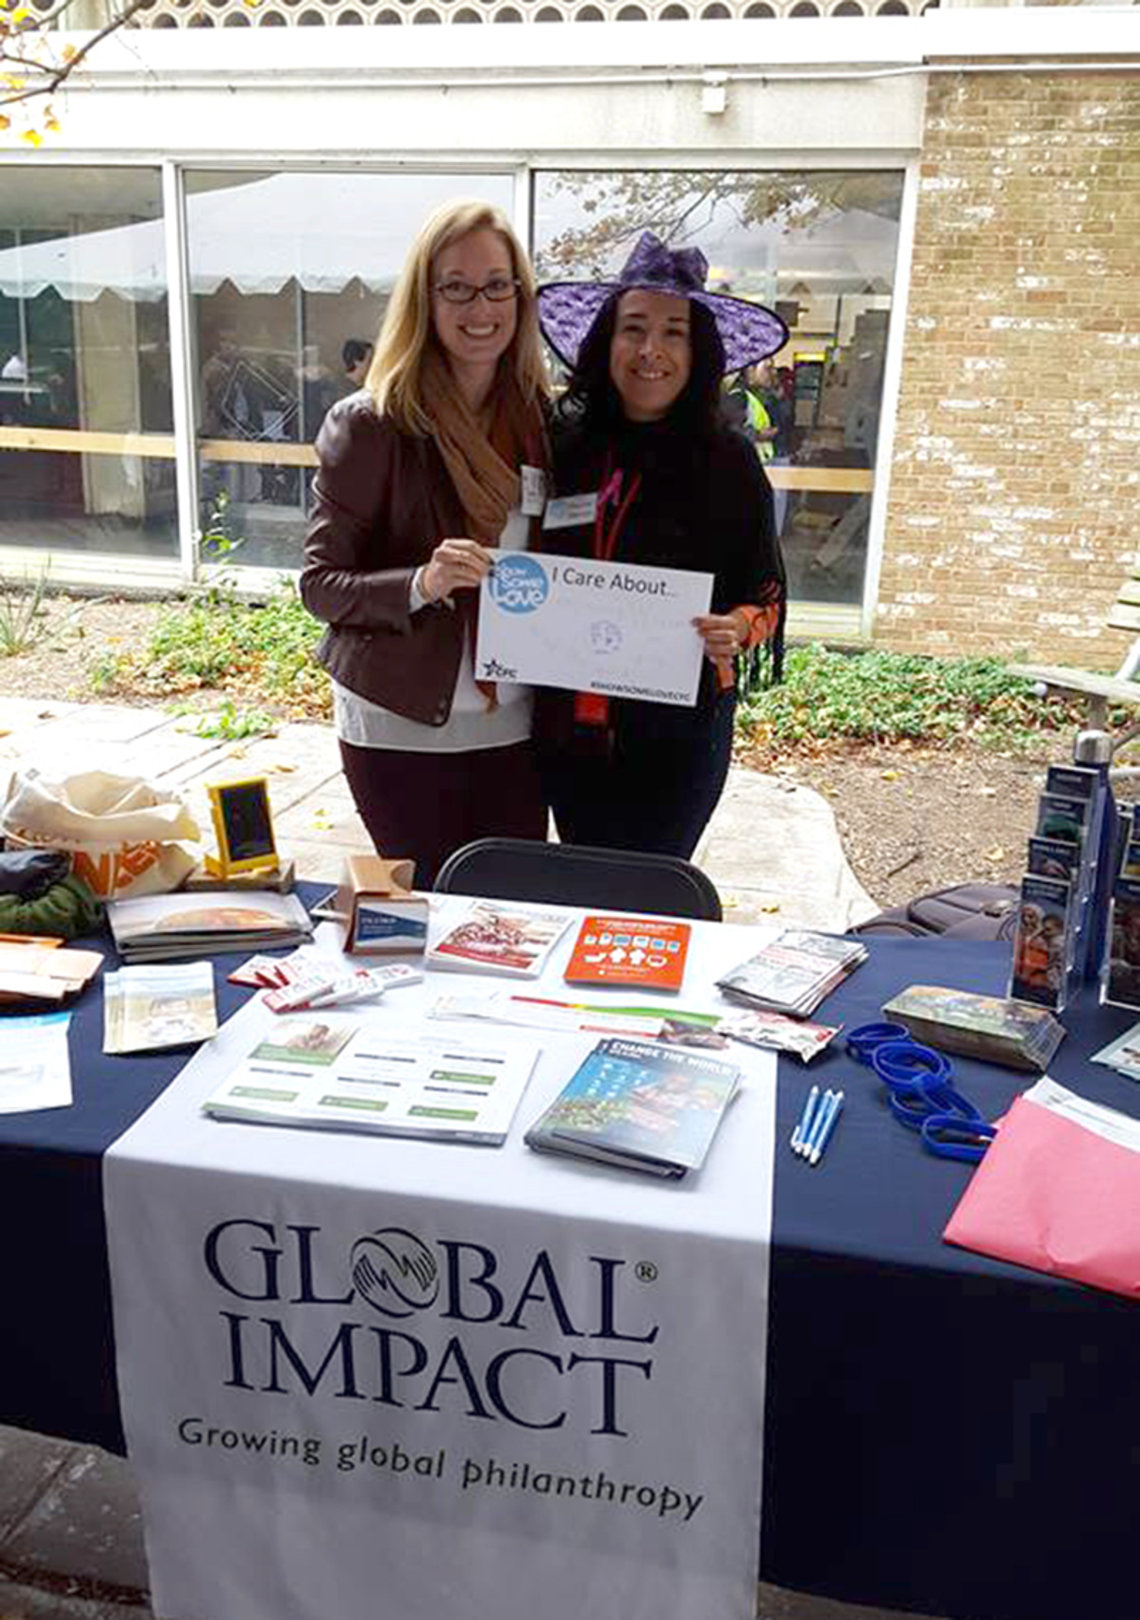 Two employees from Global Impact staff an information table.